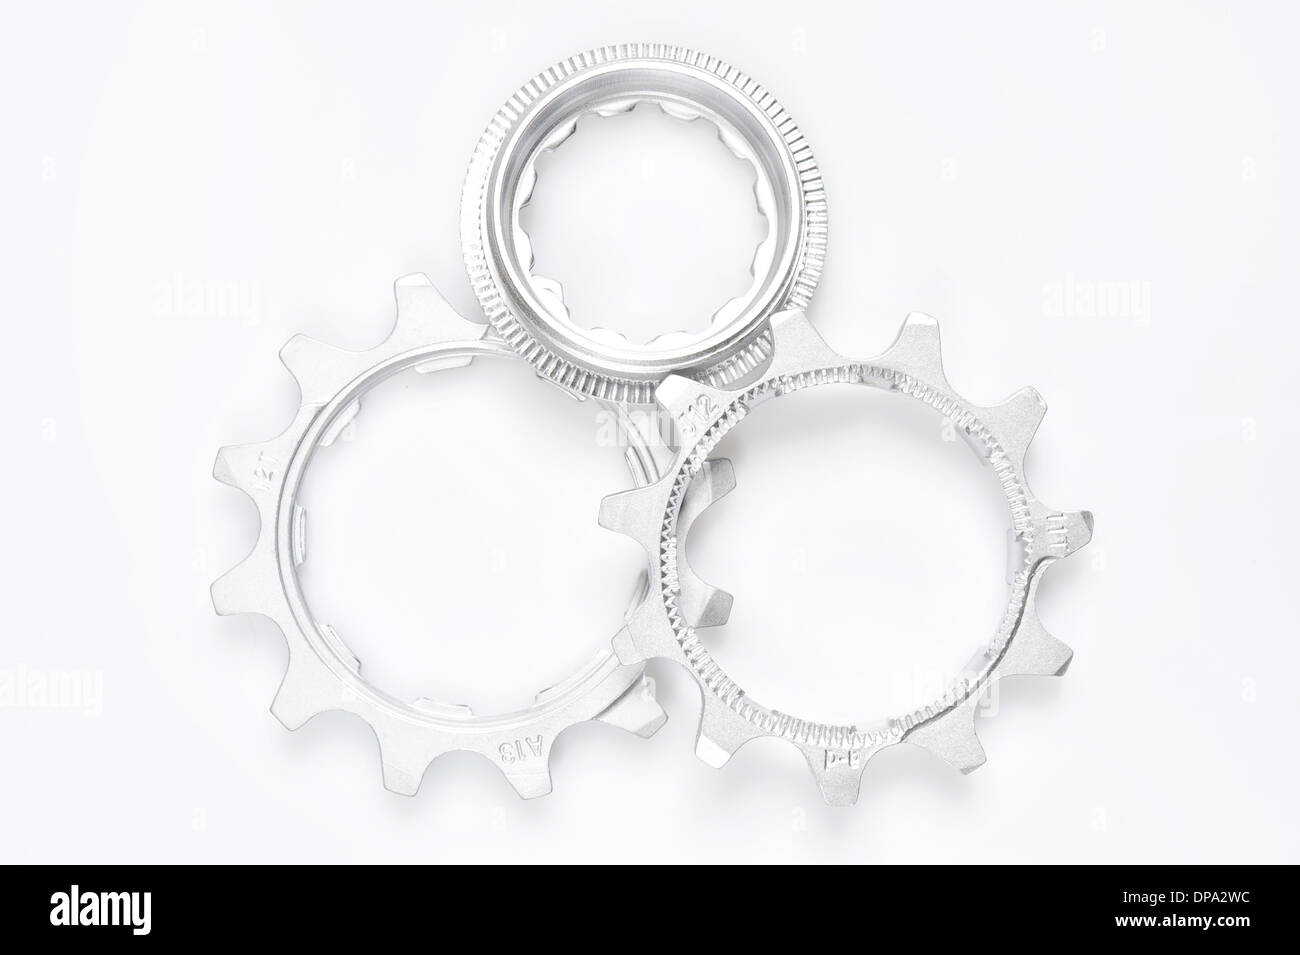 bike cassette top view - Stock Image